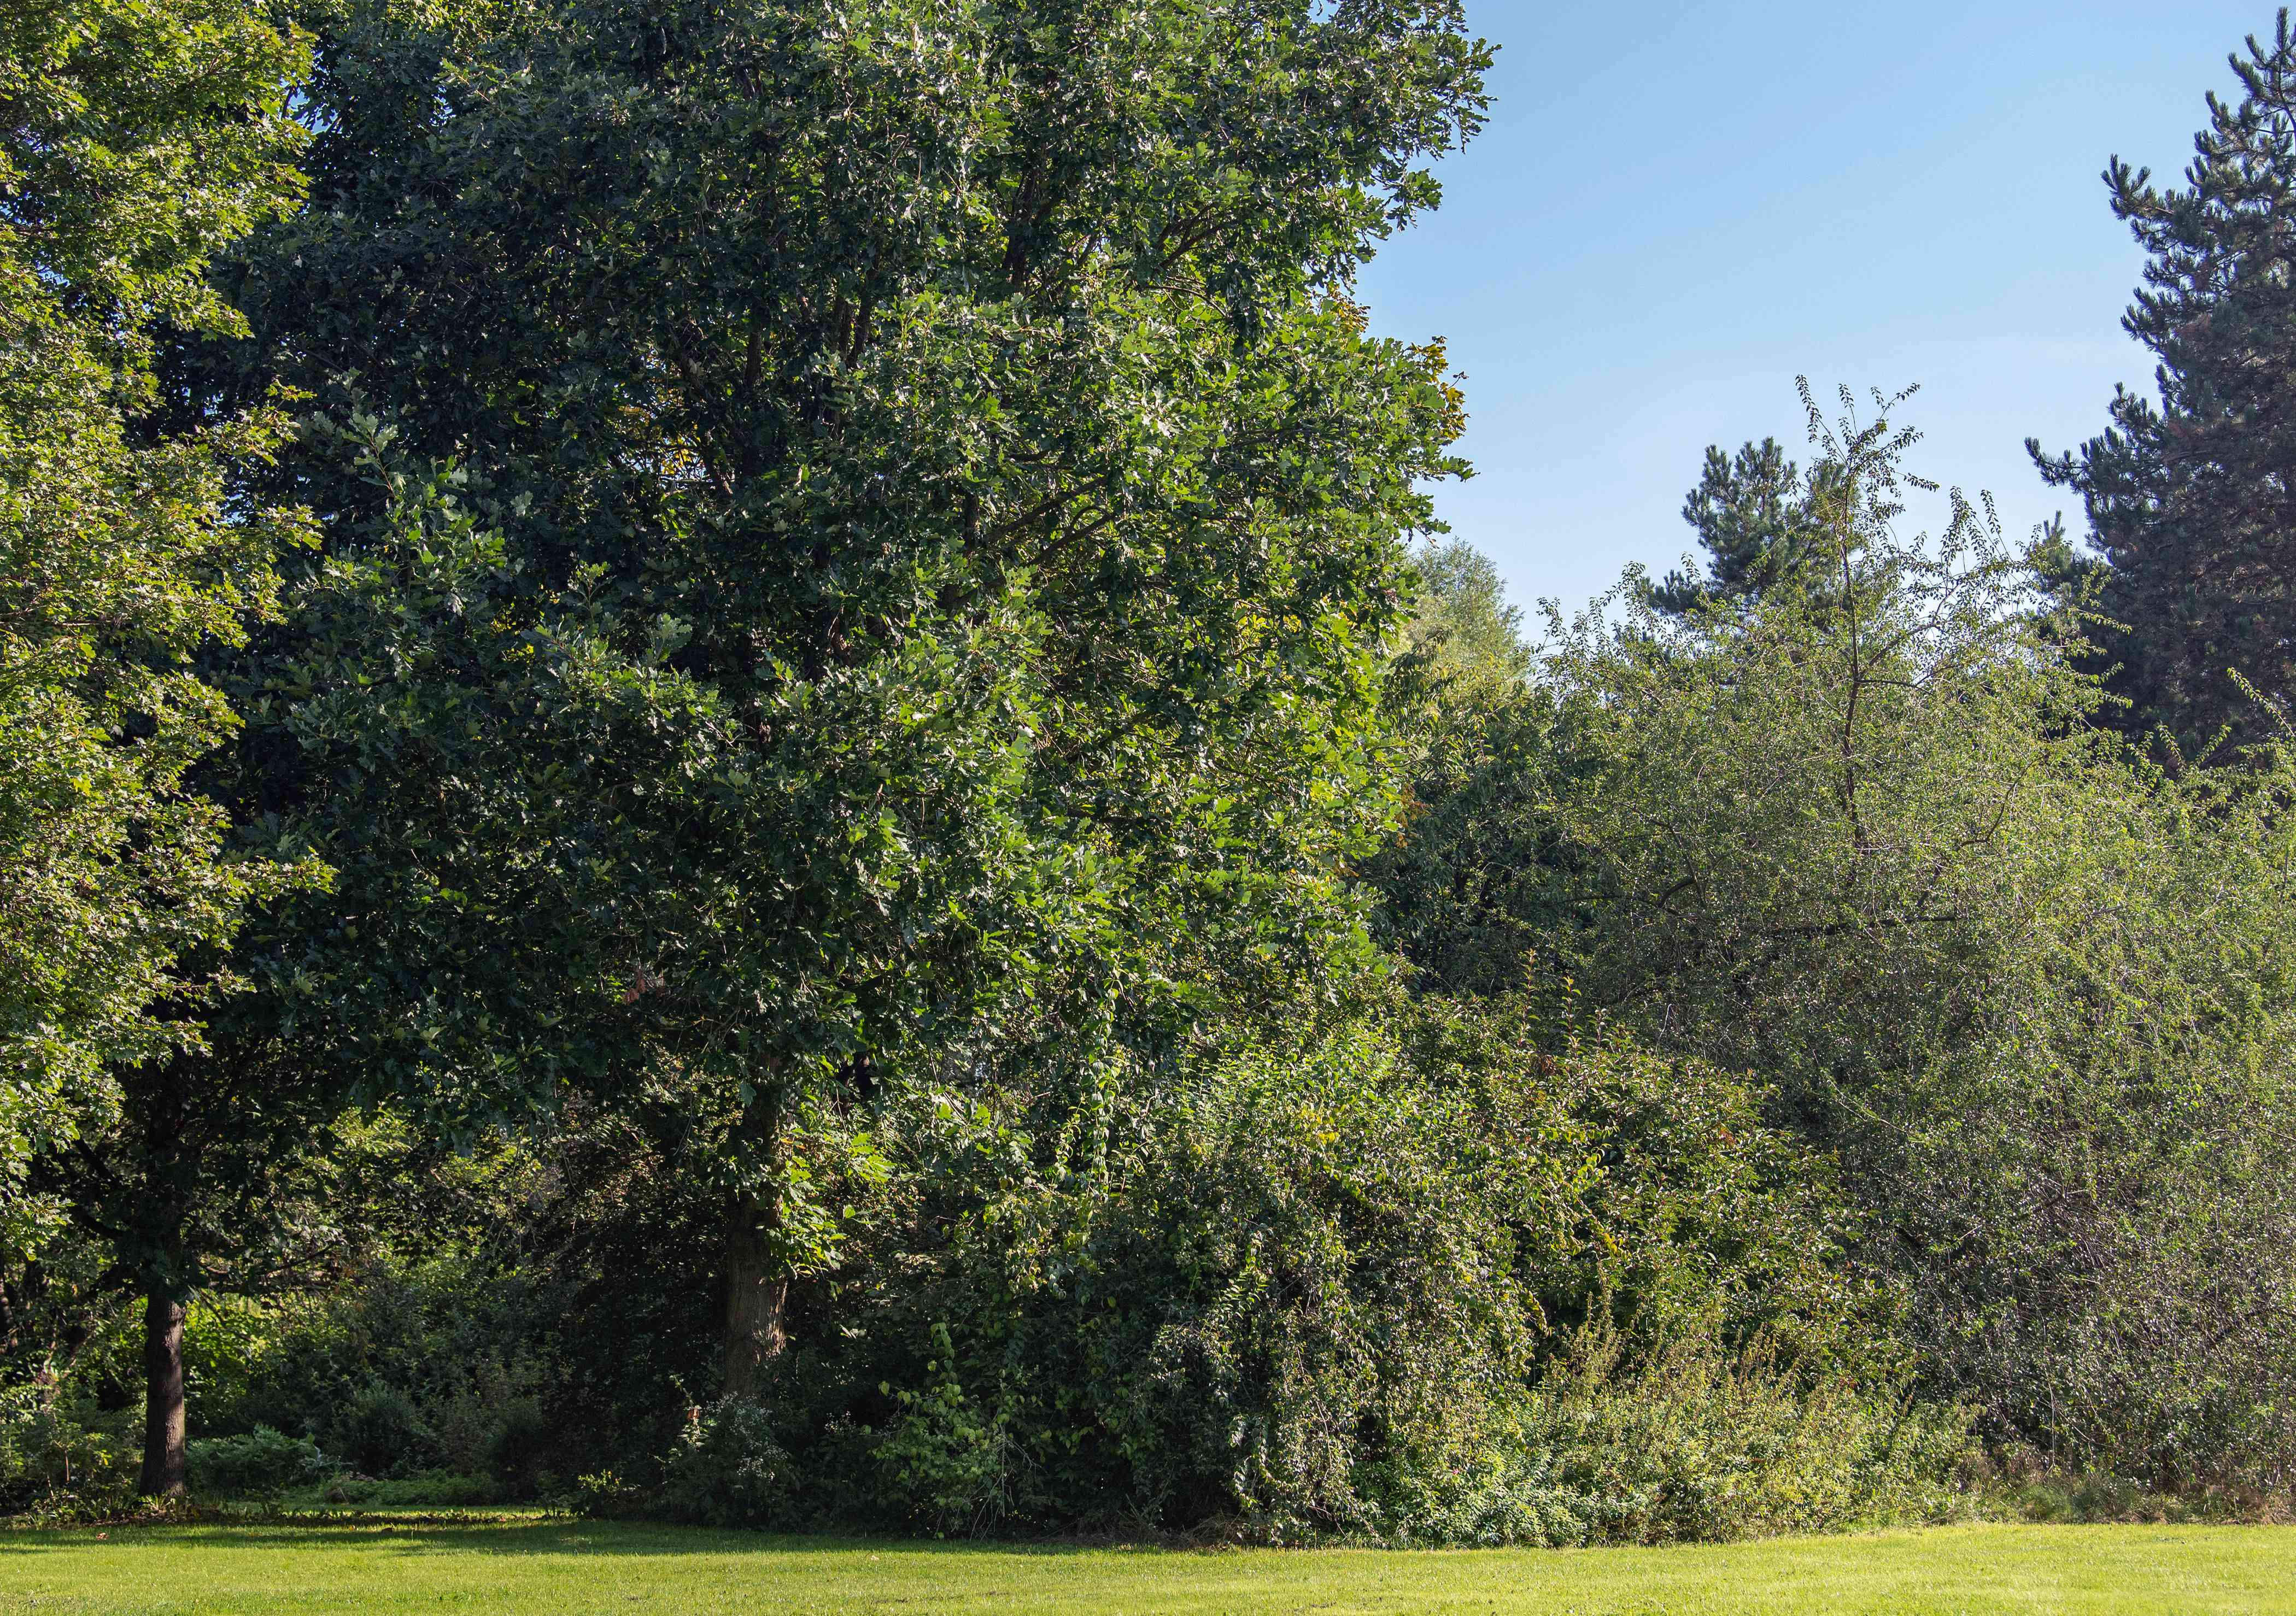 Bur oak tree with large spreading branches in wooded area